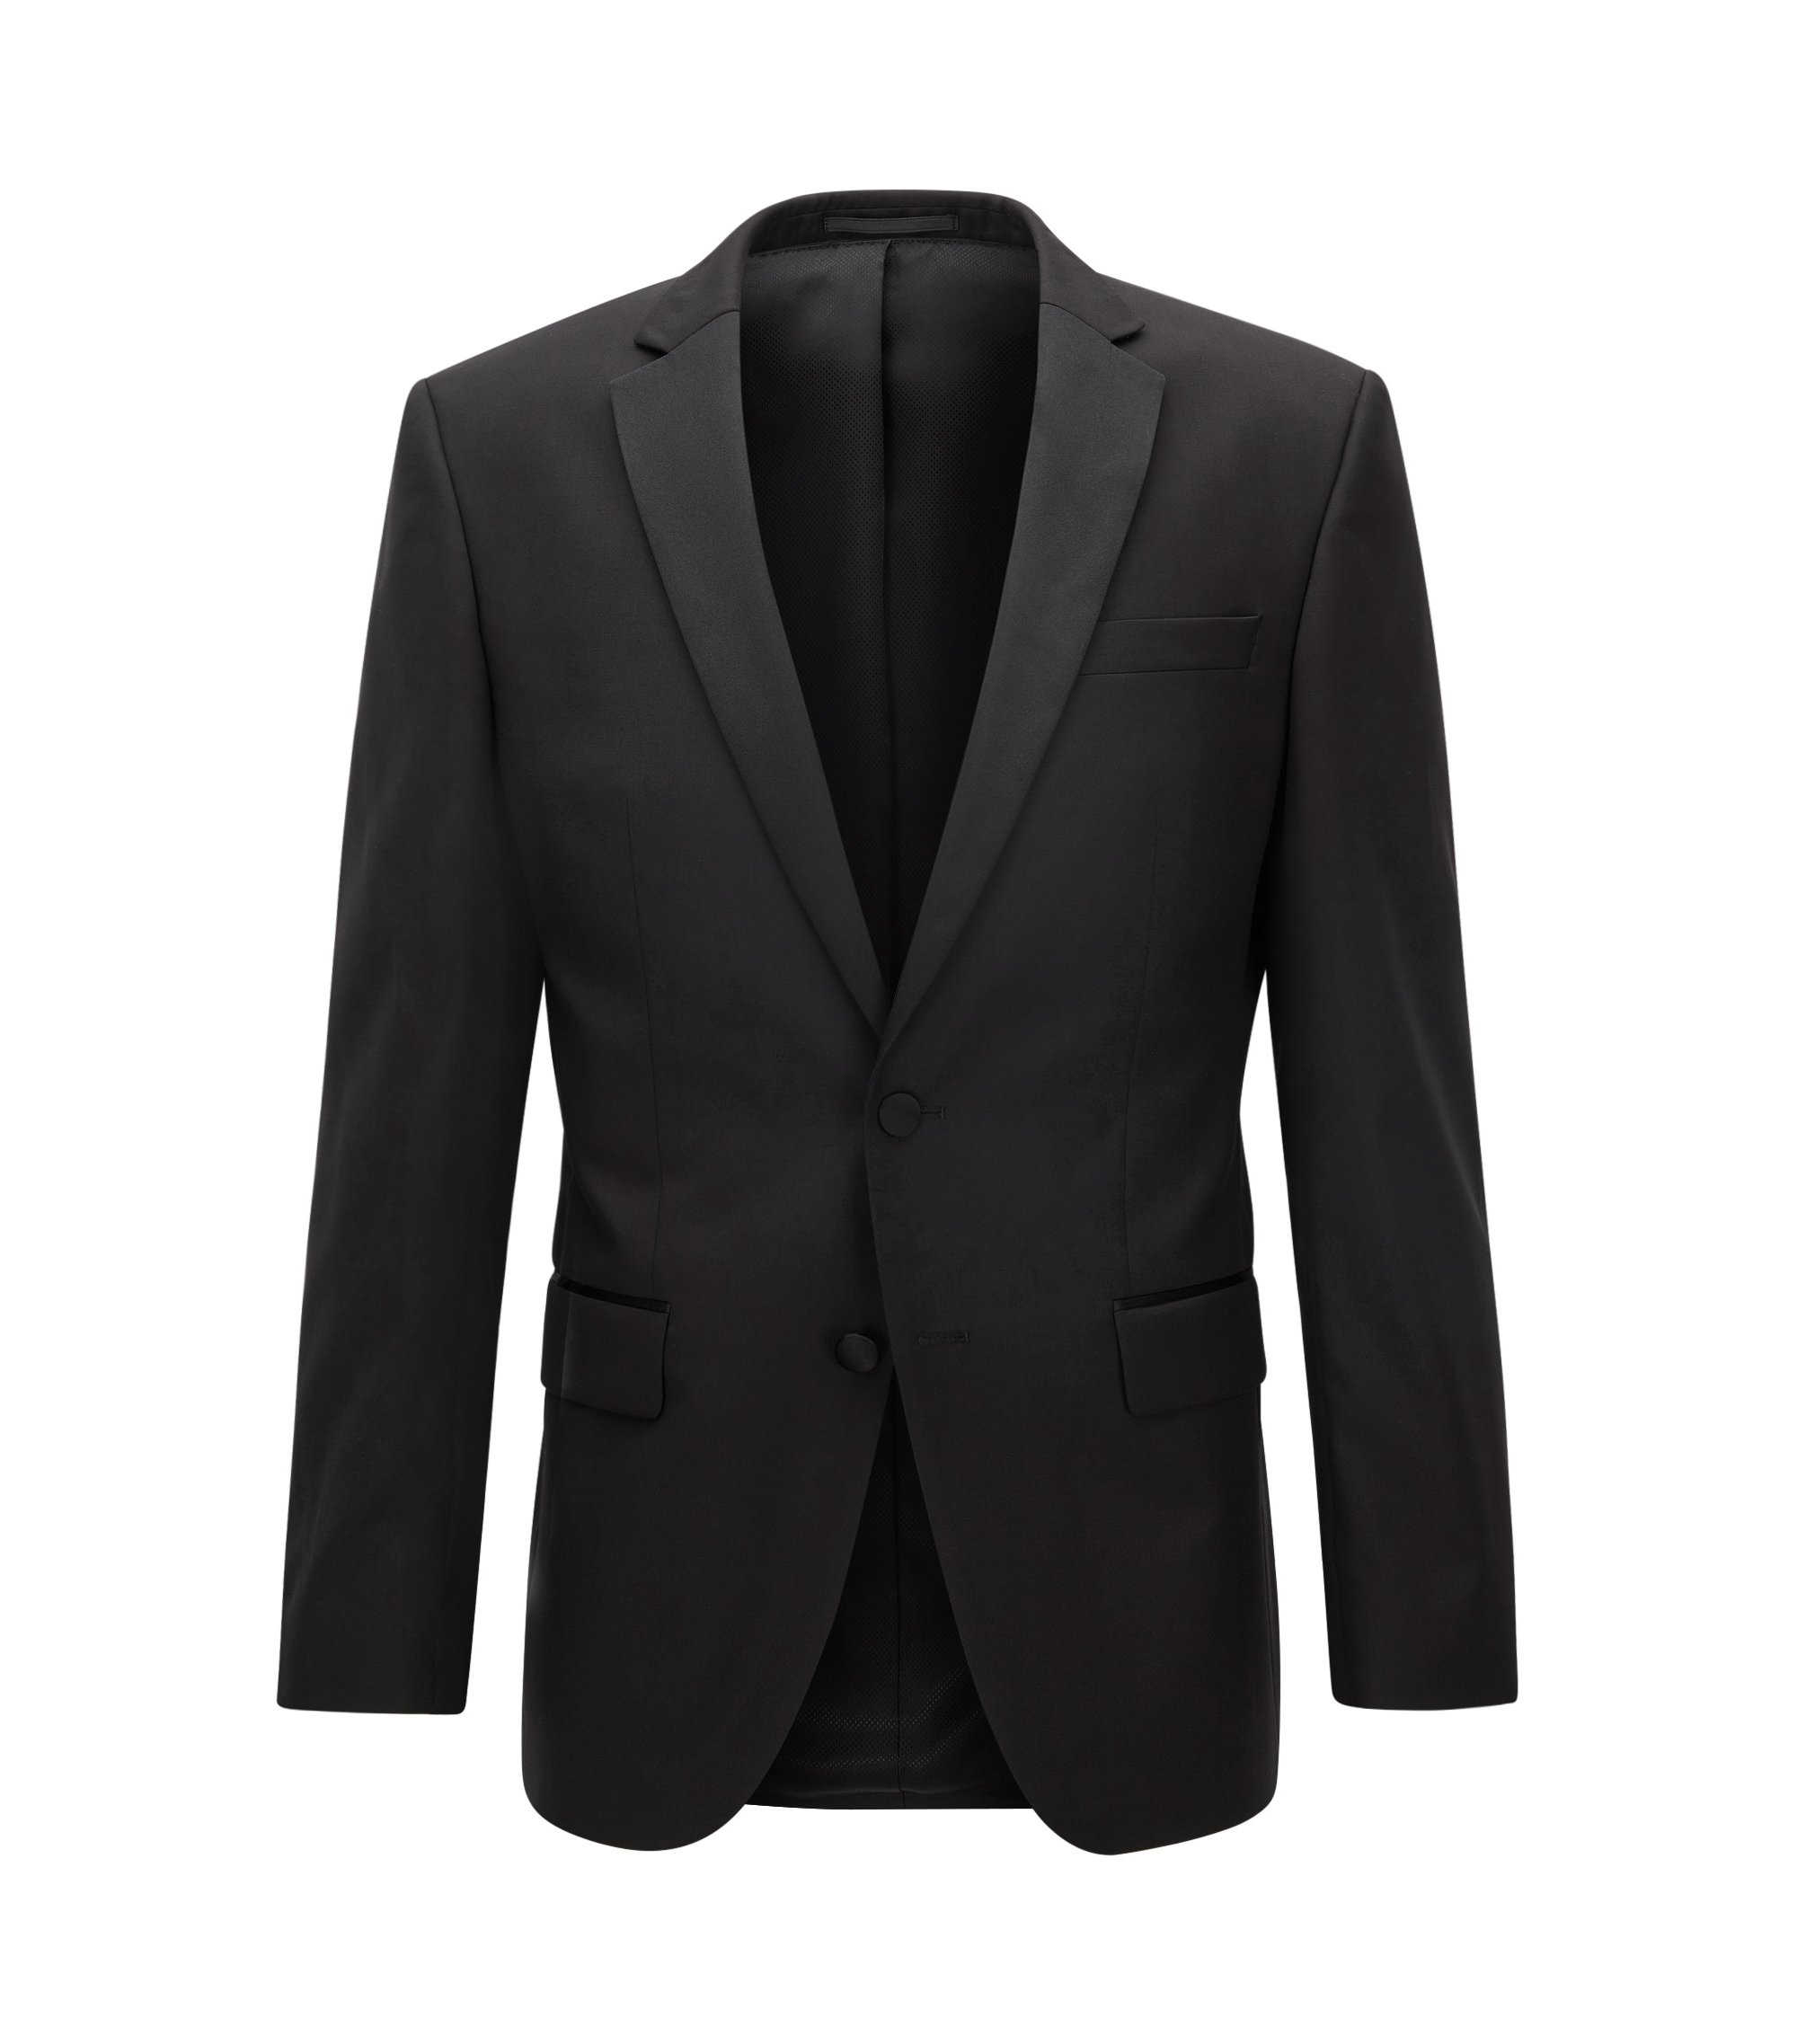 Italian Virgin Wool Suit Jacket, Slim Fit | Hence CYL, Black